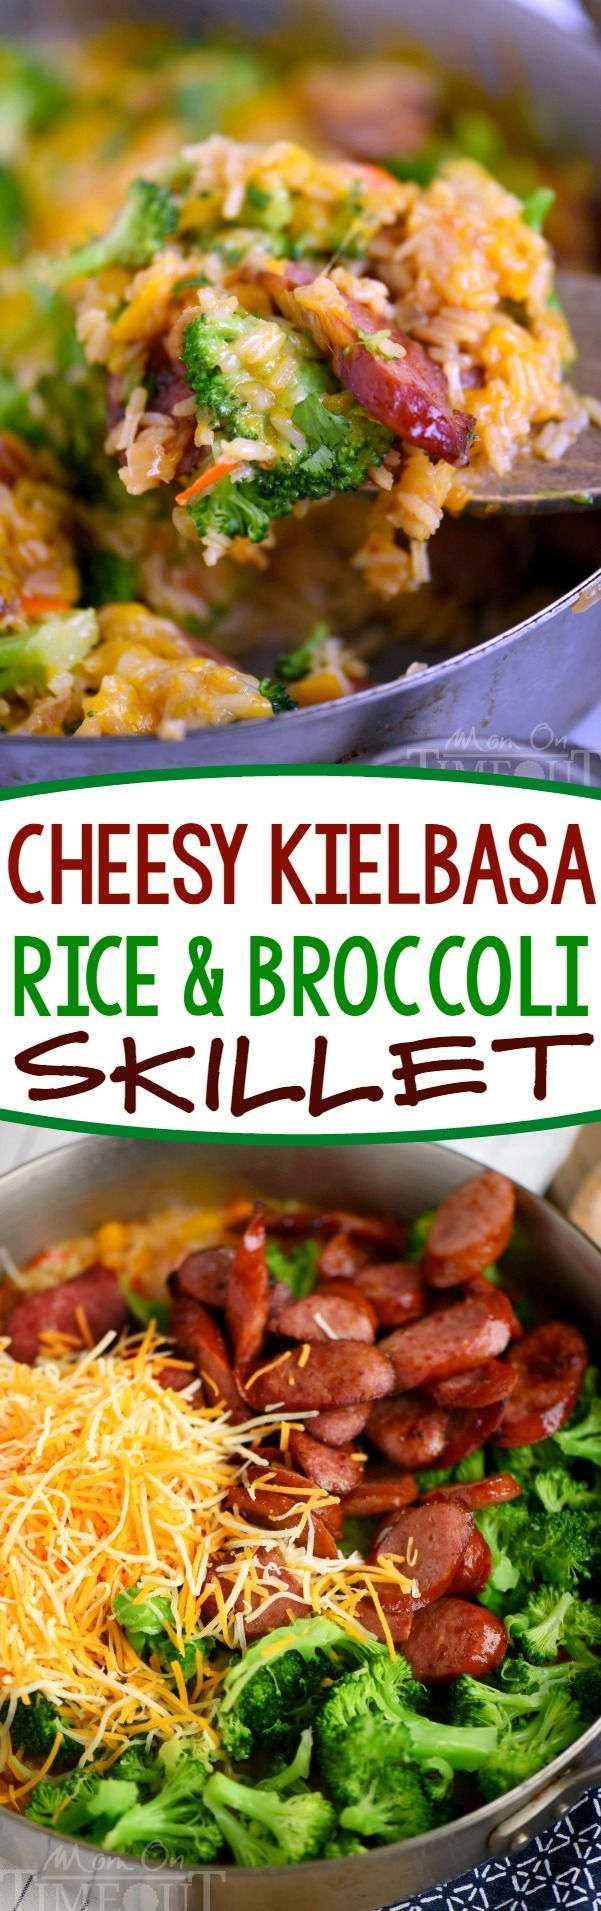 Cheesy Kielbasa, Rice and Broccoli Skillet - your new favorite dinner! This easy skillet recipe comes together in a flash and is made in a single skillet for easy clean-up. Extra cheesy, and just bursting with flavor, it's a dinner recipe you'll find your